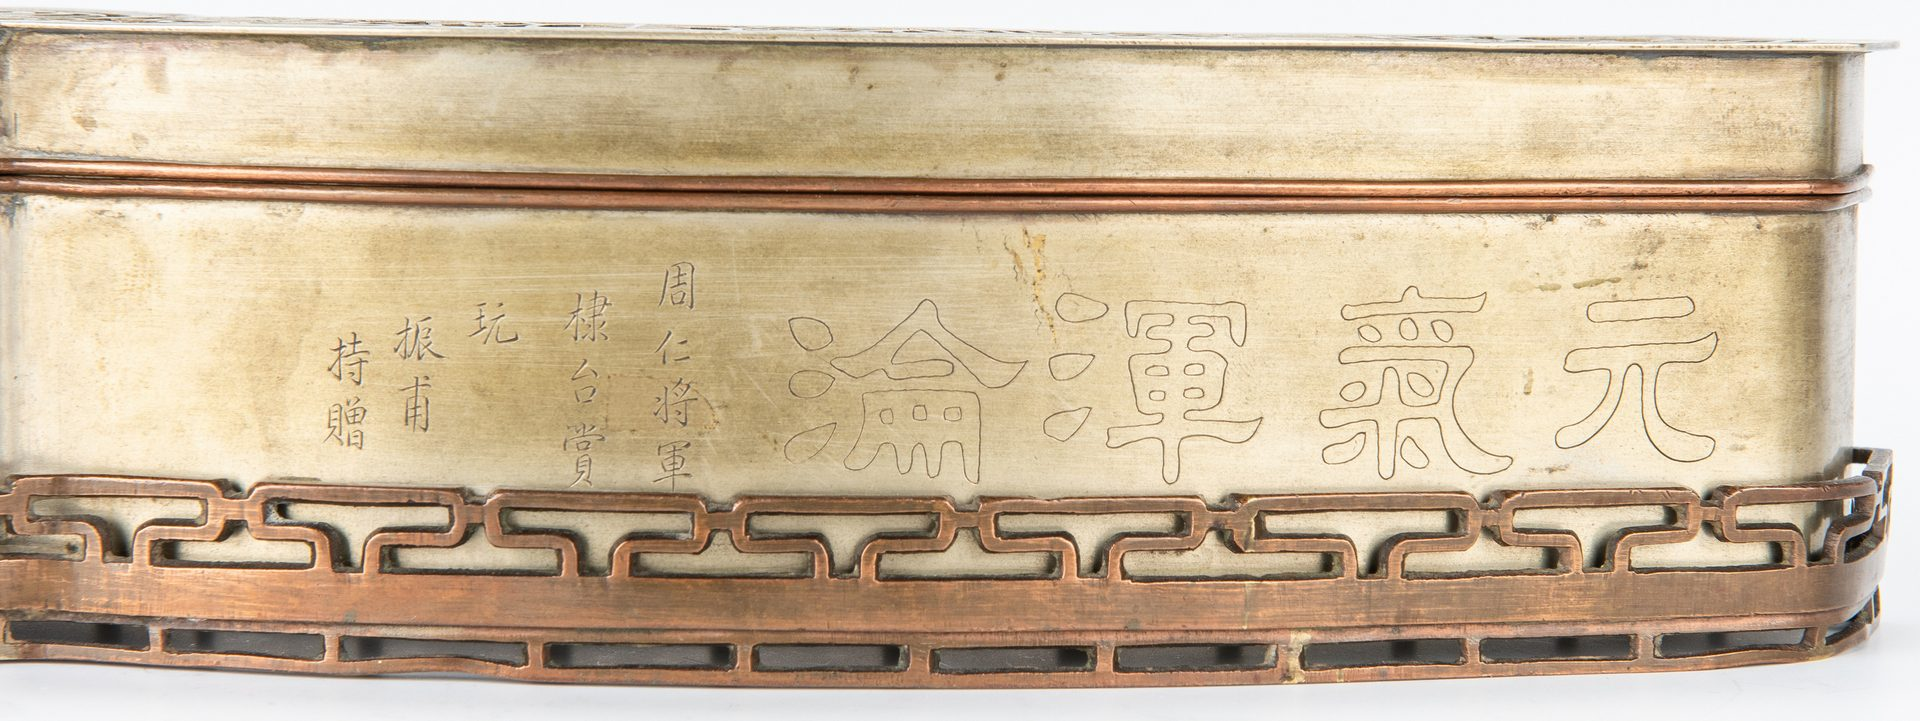 Lot 176: 3 Chinese Decorative Items, inc. Bronze